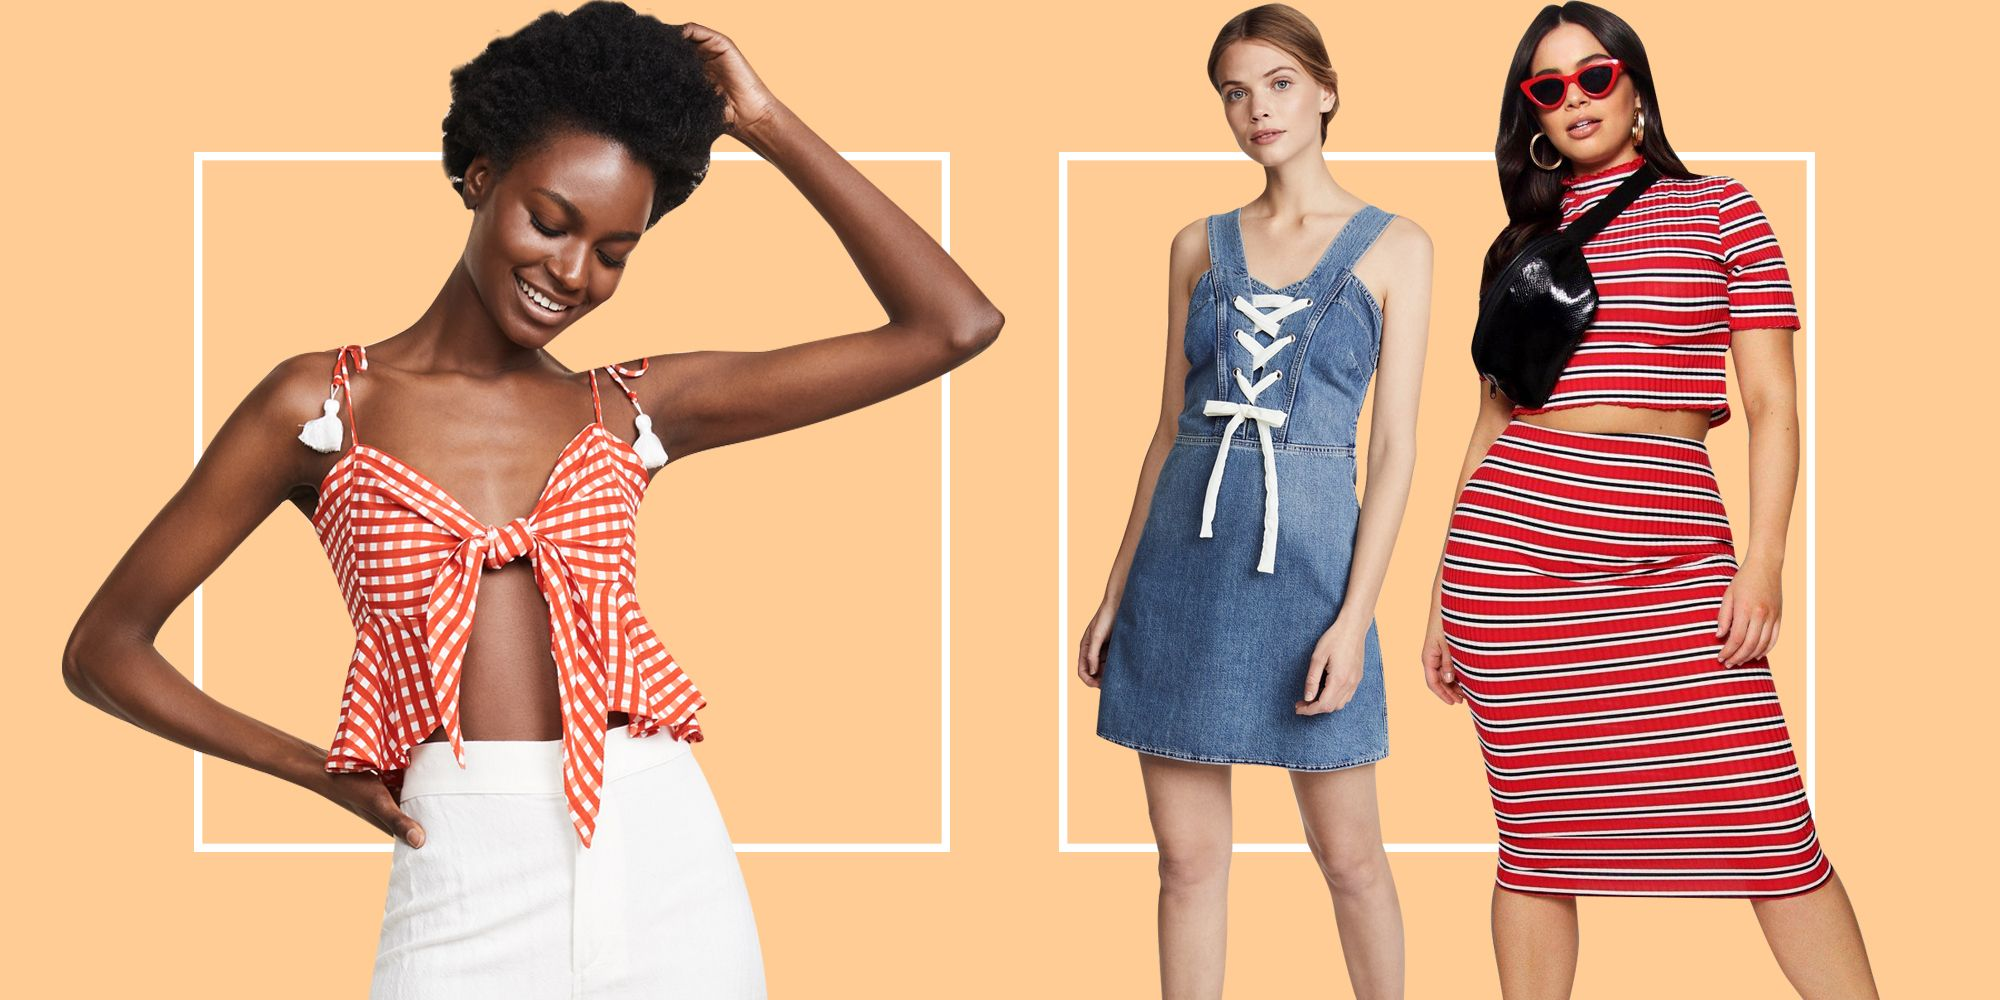 15 Patriotic But Fashionable Outfits to Wear to All Those Fourth of July Parties